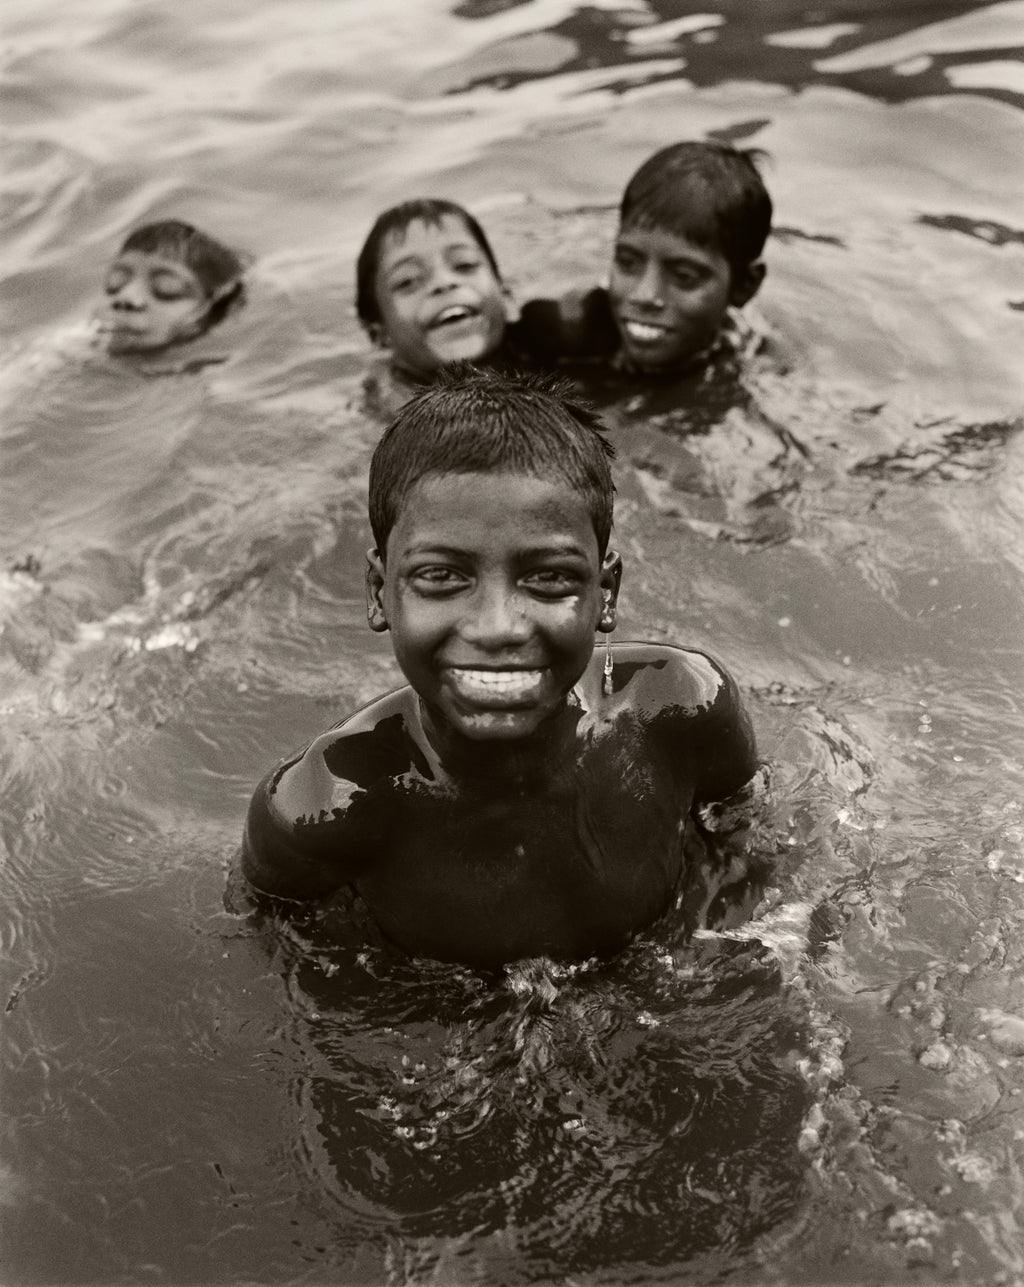 Boys in Ganges River, India 2